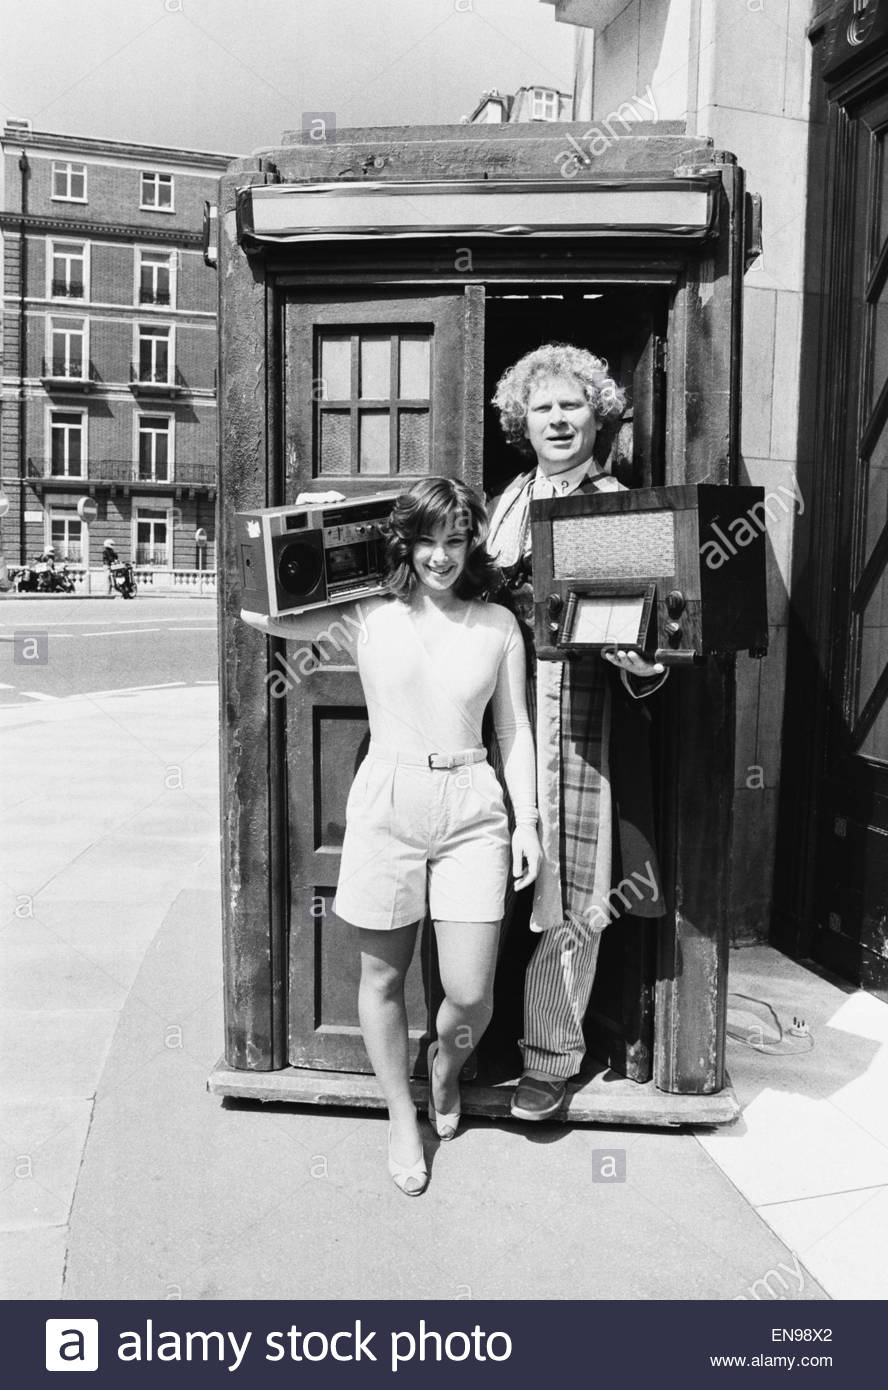 actor-colin-baker-who-plays-doctor-who-in-the-bbc-science-fiction-EN98X2.jpg